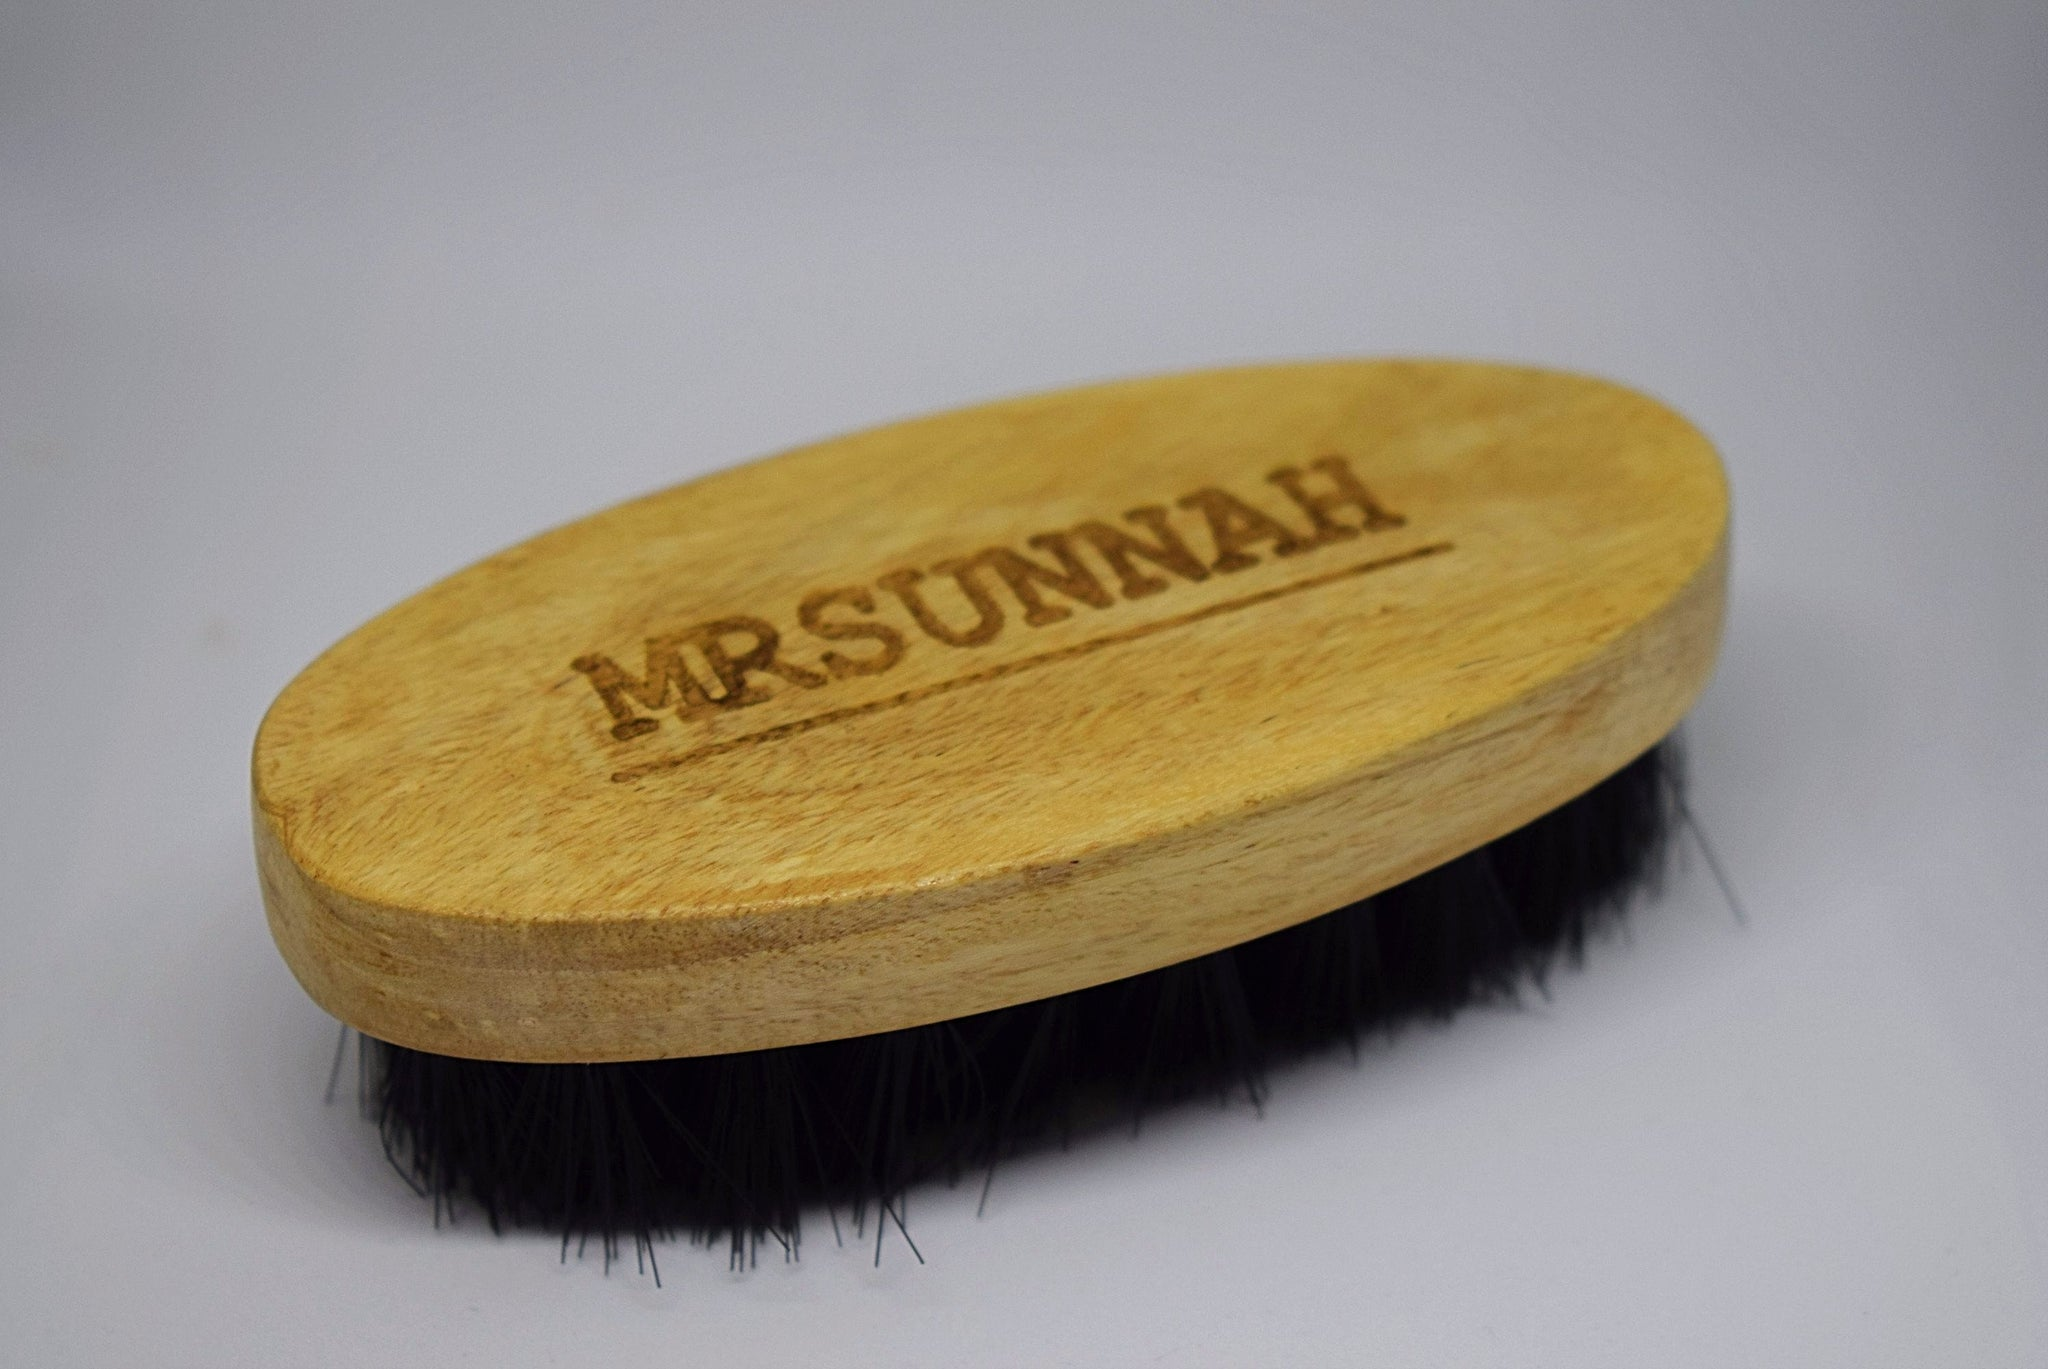 Mrsunnah Beard Brush - Mrsunnah Grooming Co